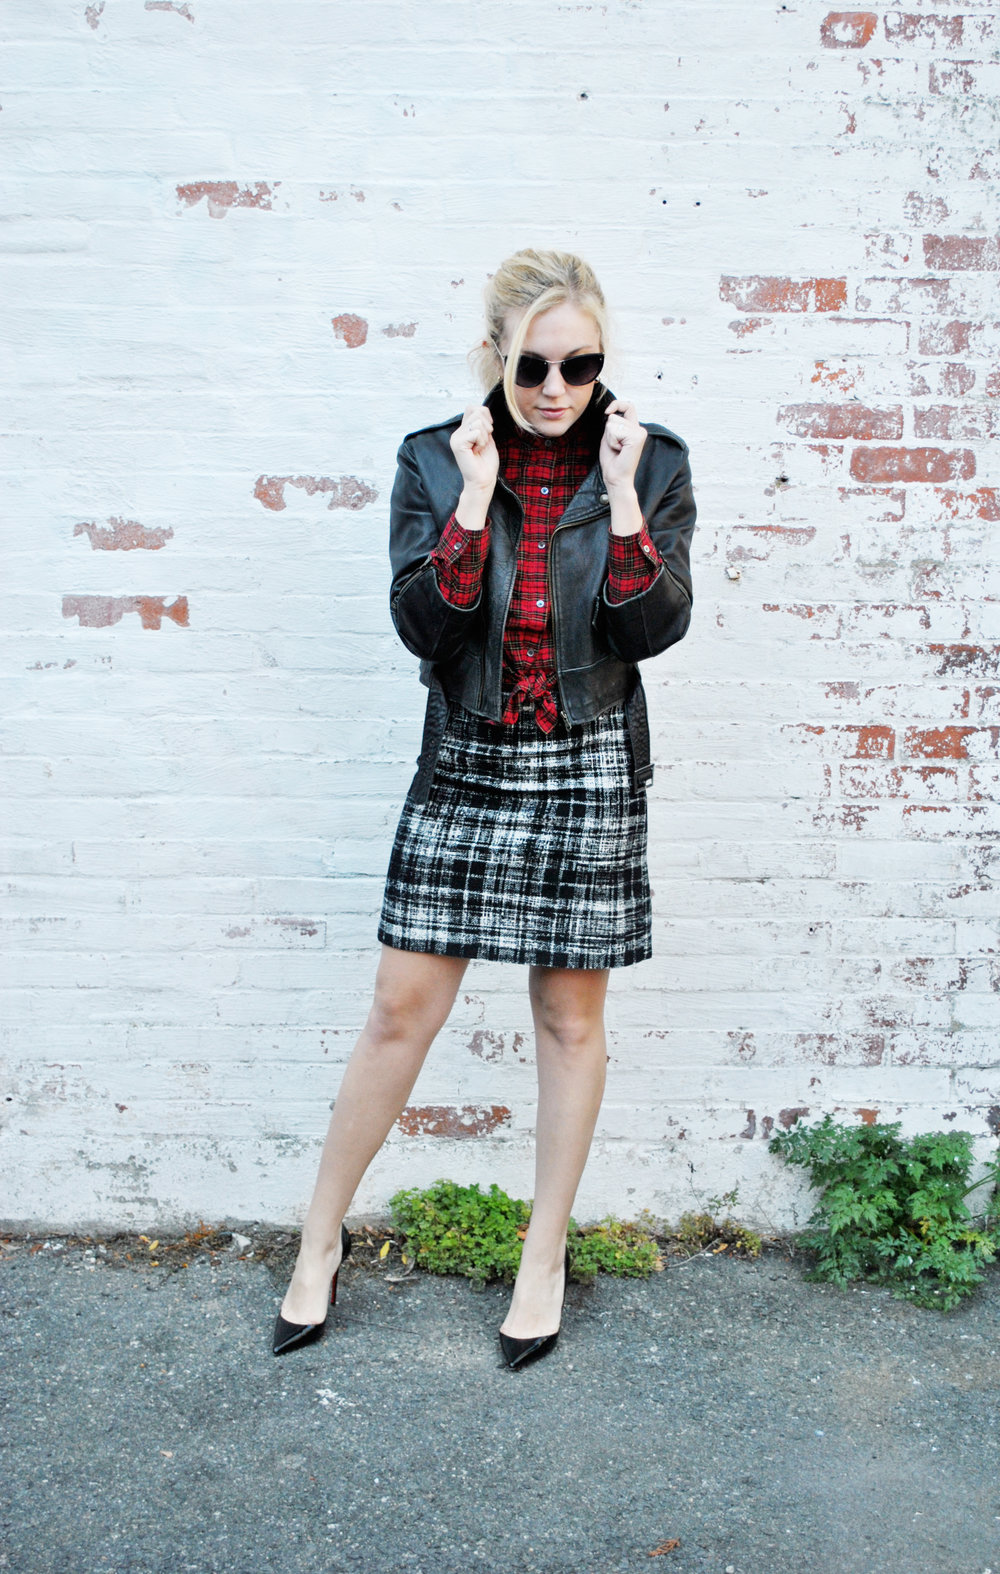 thoughtfulwish | preppy, plaid, plaid outfit, fall outfit, winter outfit, j.mclaughlin, ann taylor, boston fashion, fashion blogger, fblog, christian louboutin